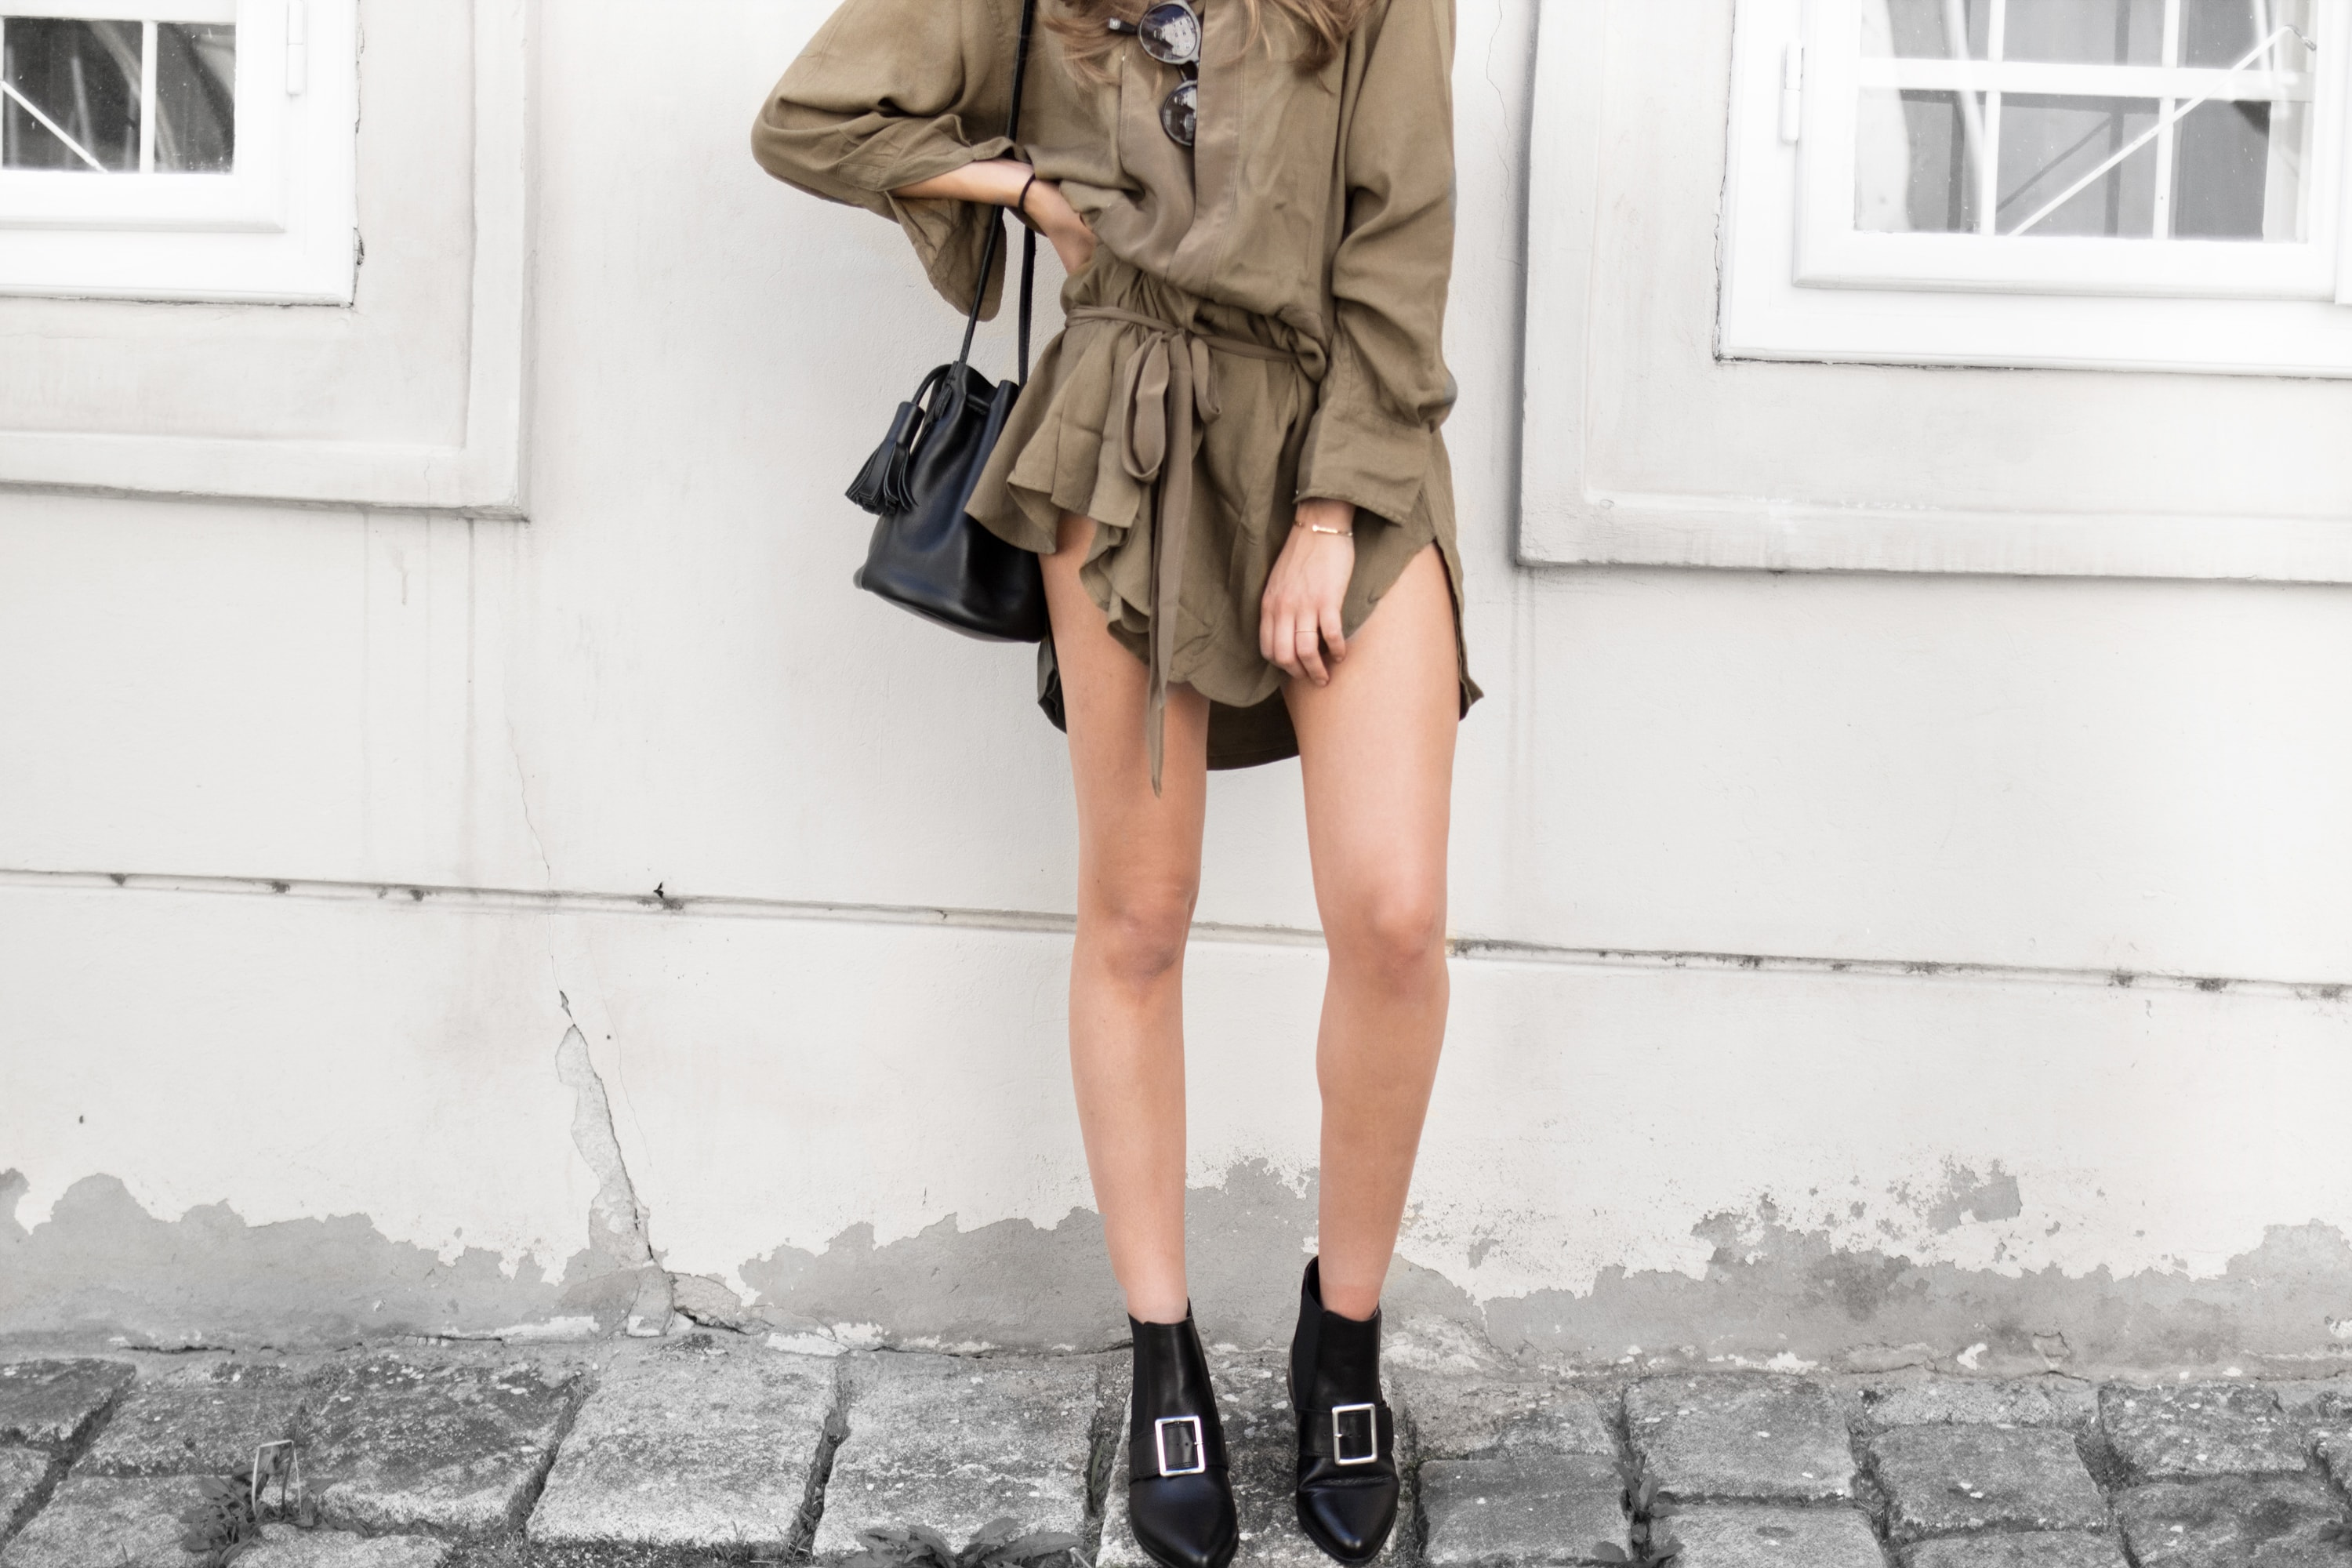 magali_pascal_khaki_dress_lenamarias2